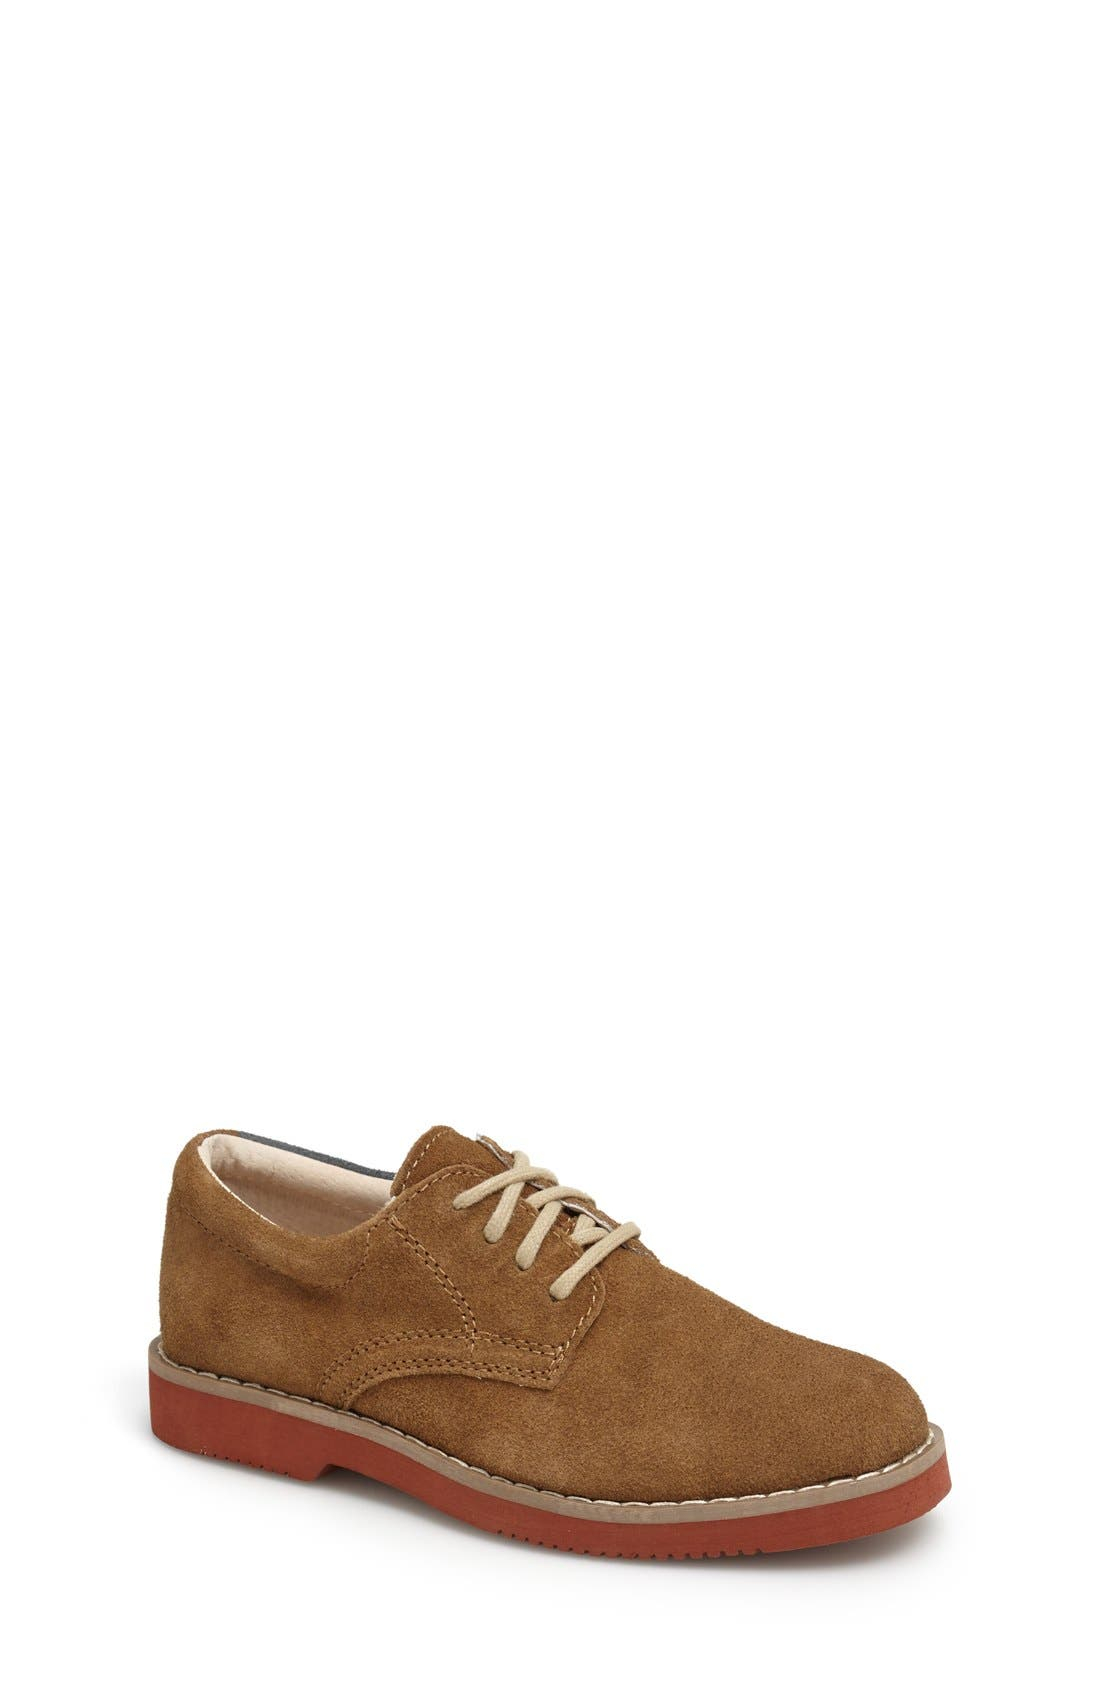 TUCKER + TATE by Nordstrom Cameron Oxford